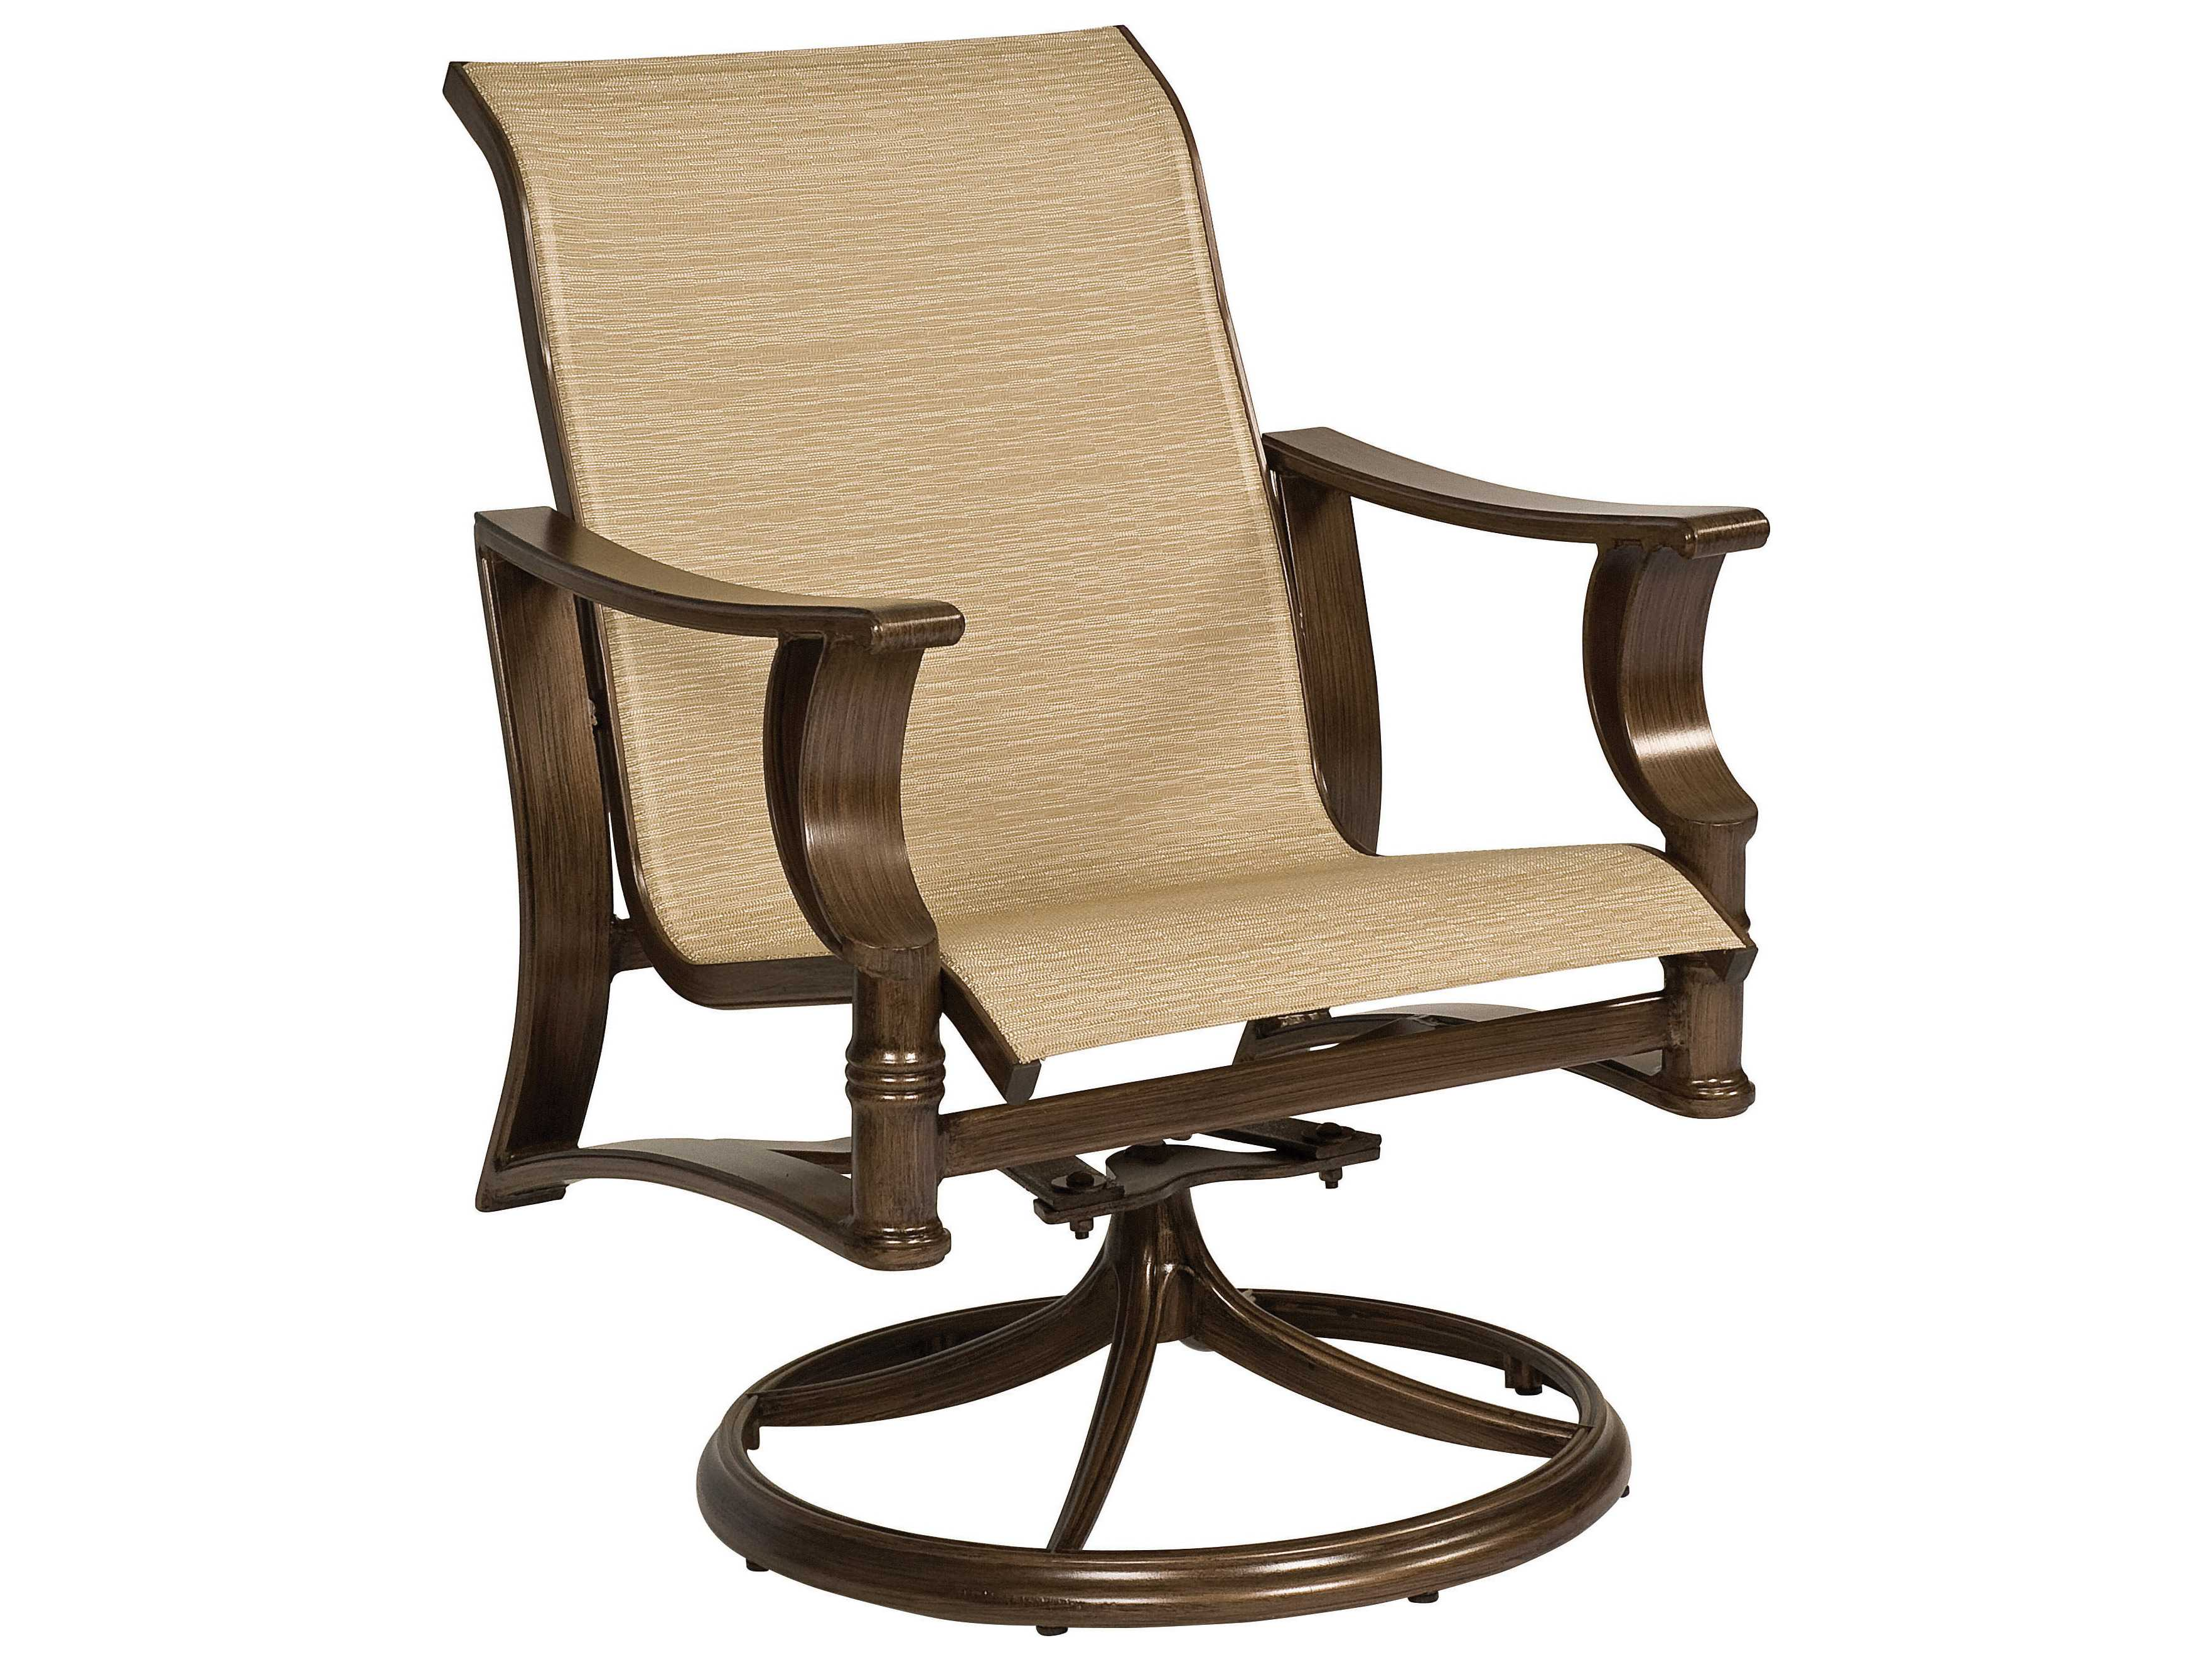 Sling Chairs Woodard Arkadia Sling Aluminum Swivel Rocker Lounge Chair